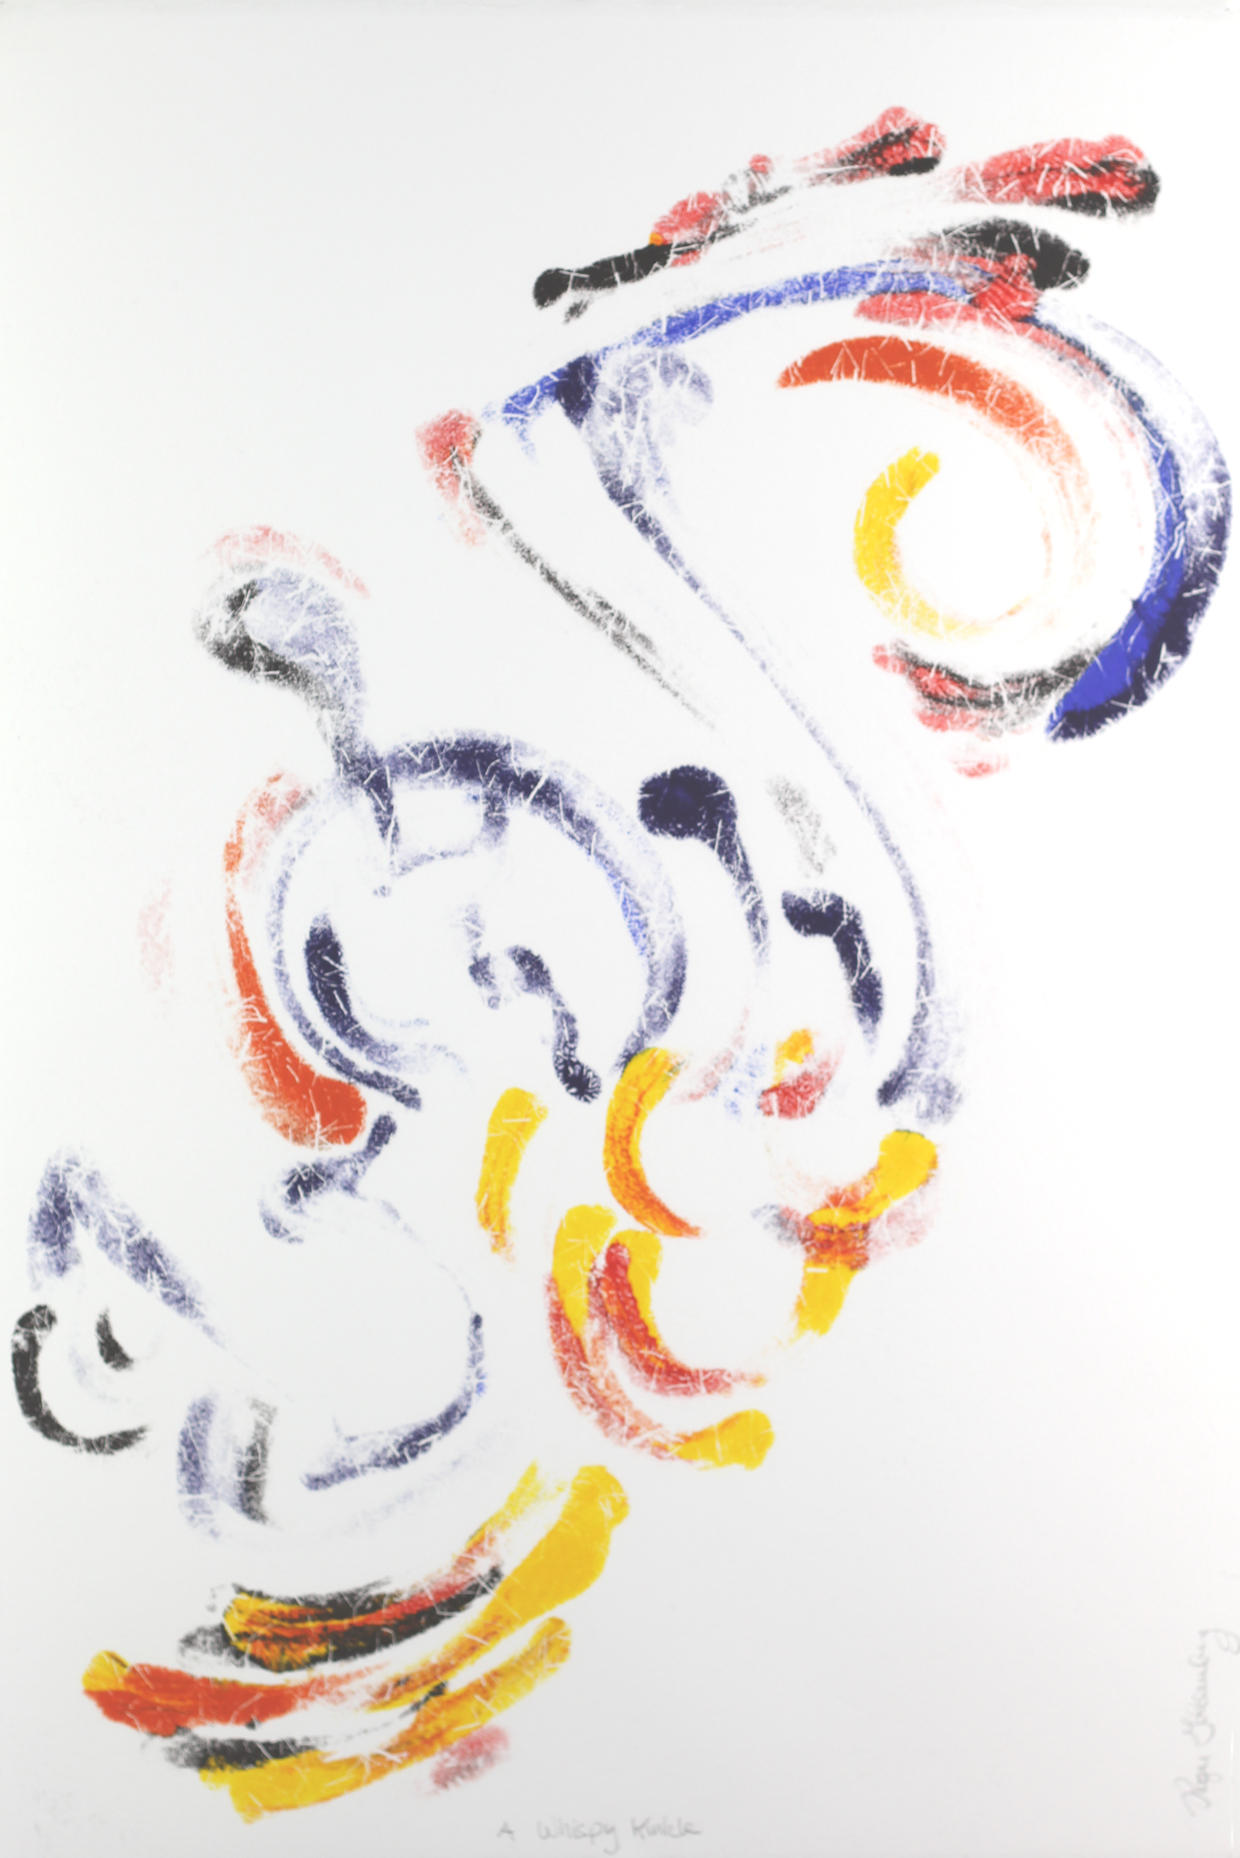 Roger Goldenberg's Visual Jazz Monotype Gallery C has prints pulled from shaped plates. Their style riffs on Goldenberg's shaped visual jazz paintings A Winky Kinkle